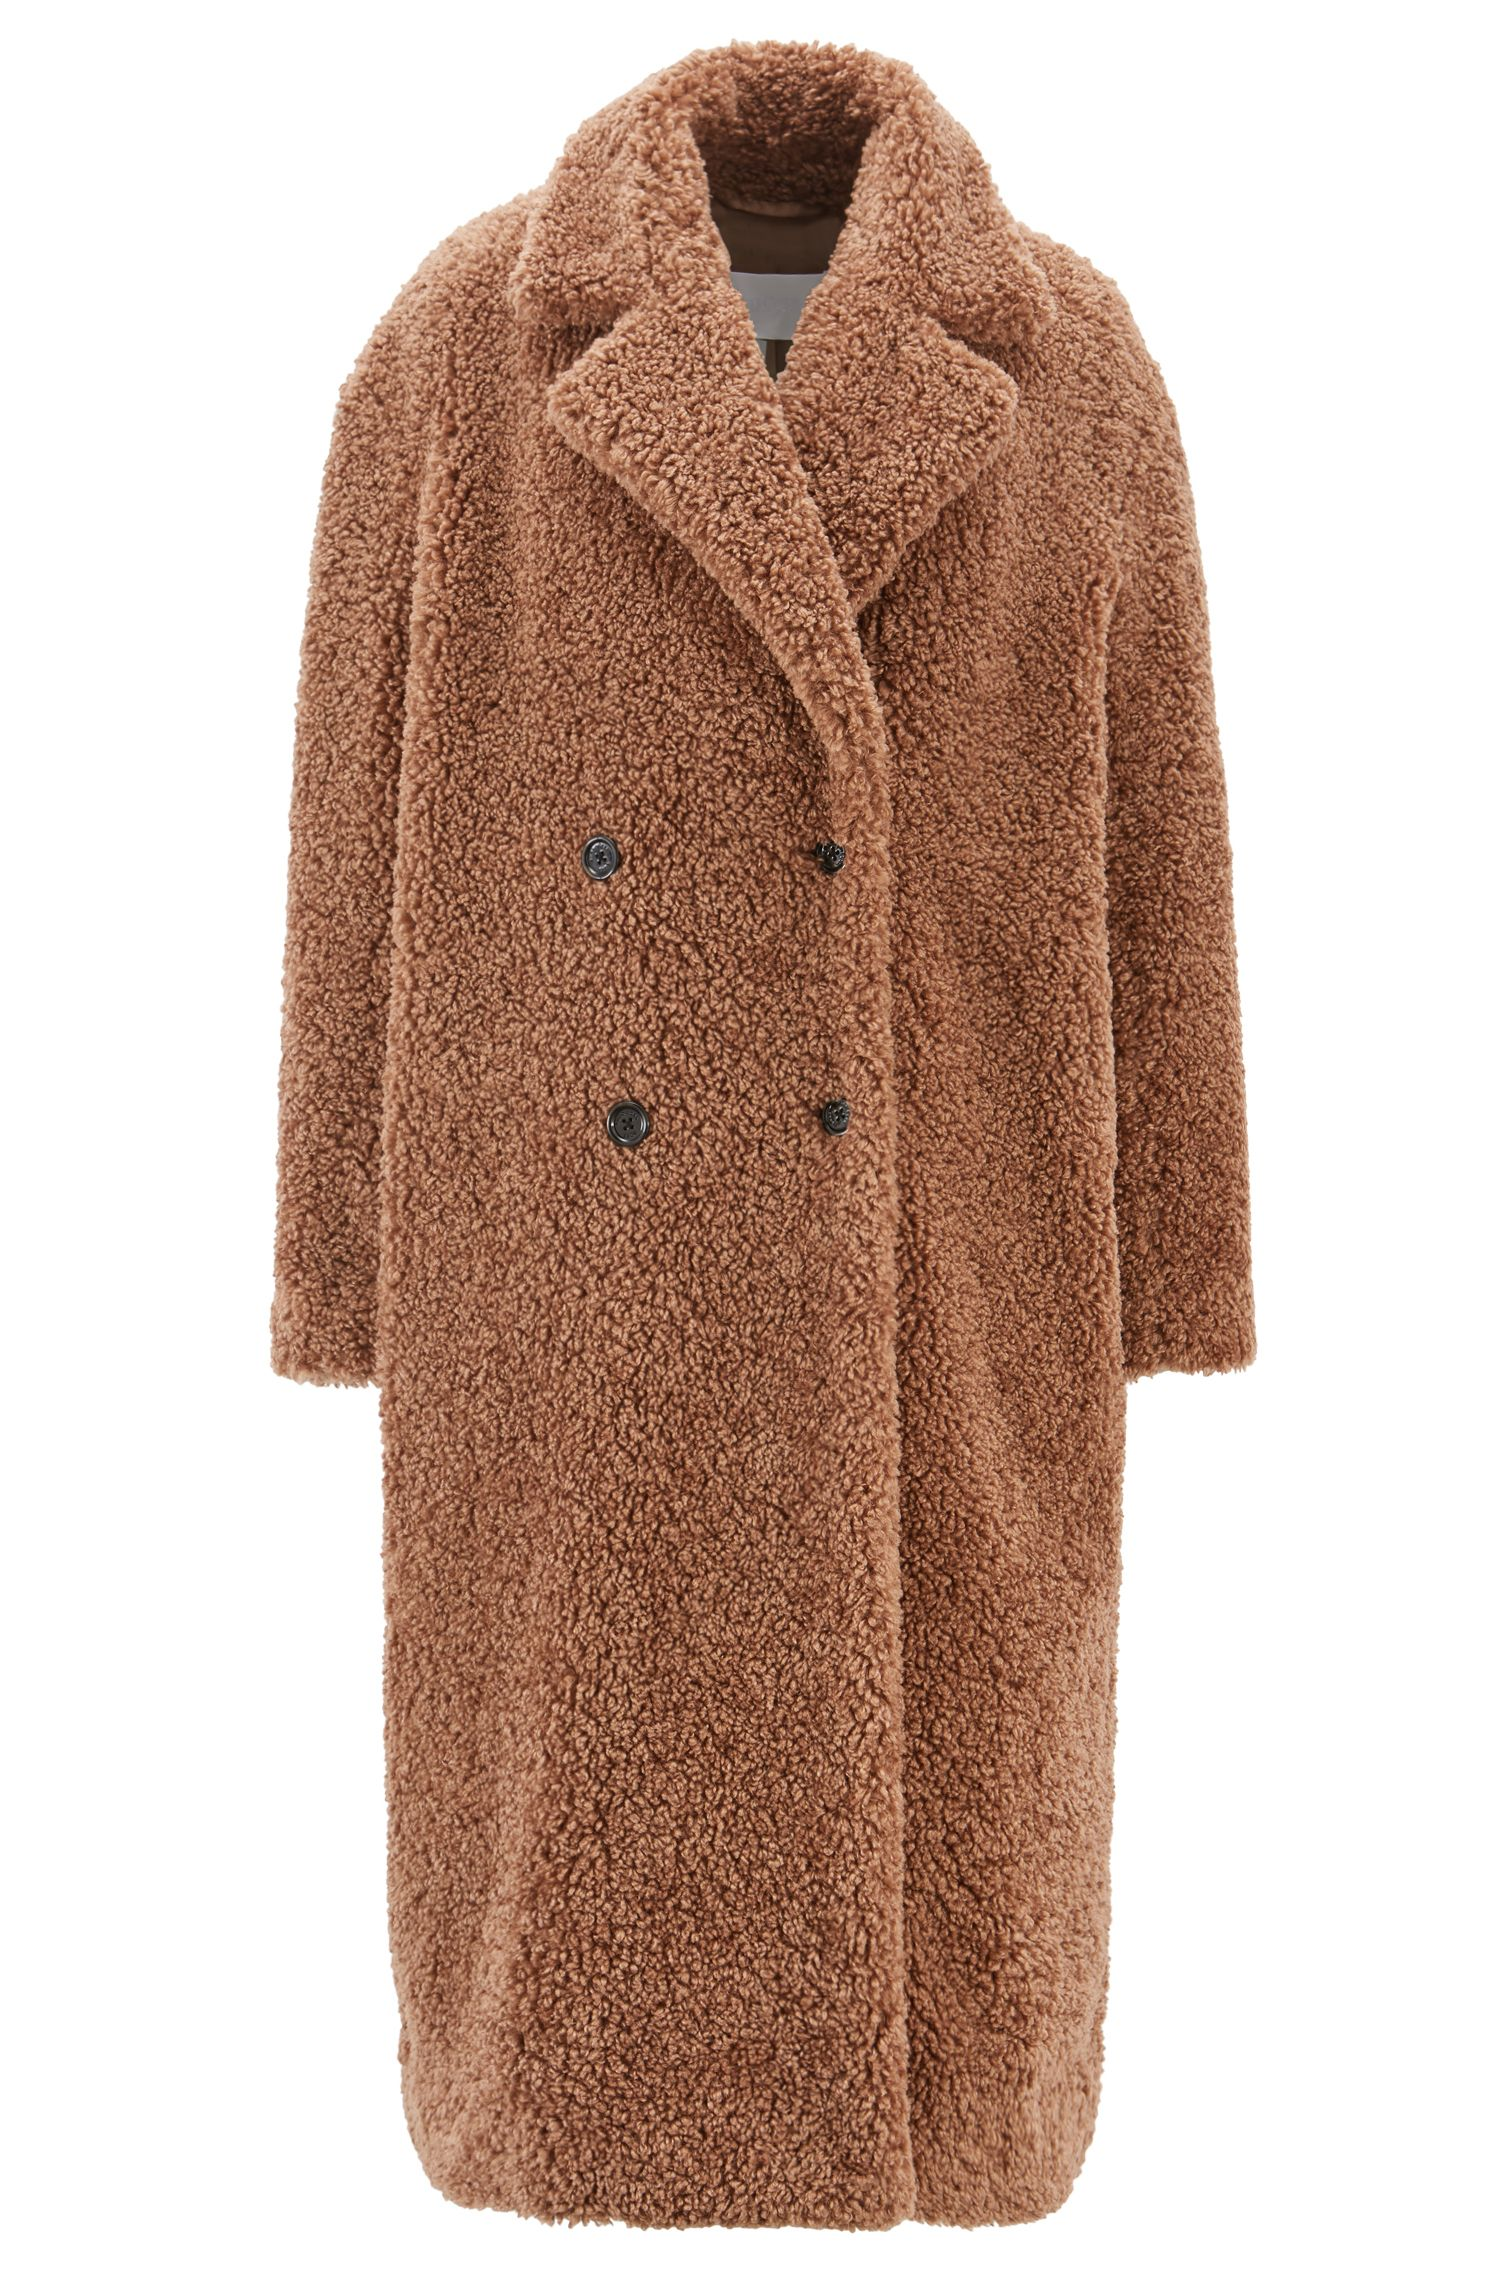 Faux-fur teddy coat with double-breasted front, Brown